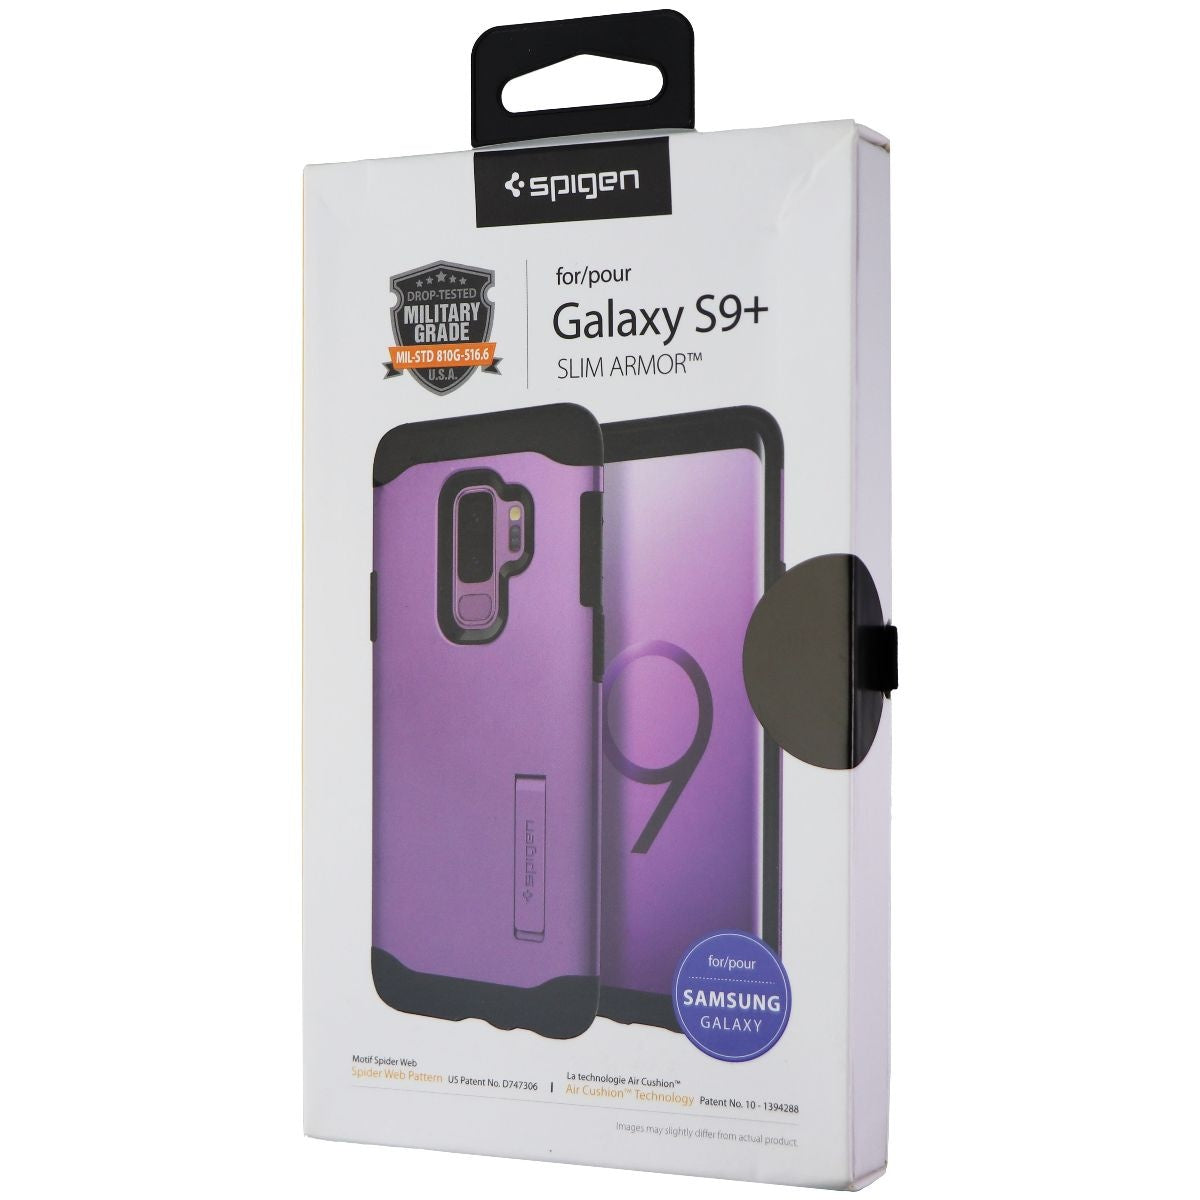 Spigen Slim Armor Dual Layer Case for Samsung Galaxy (S9+) - Lilac Purple